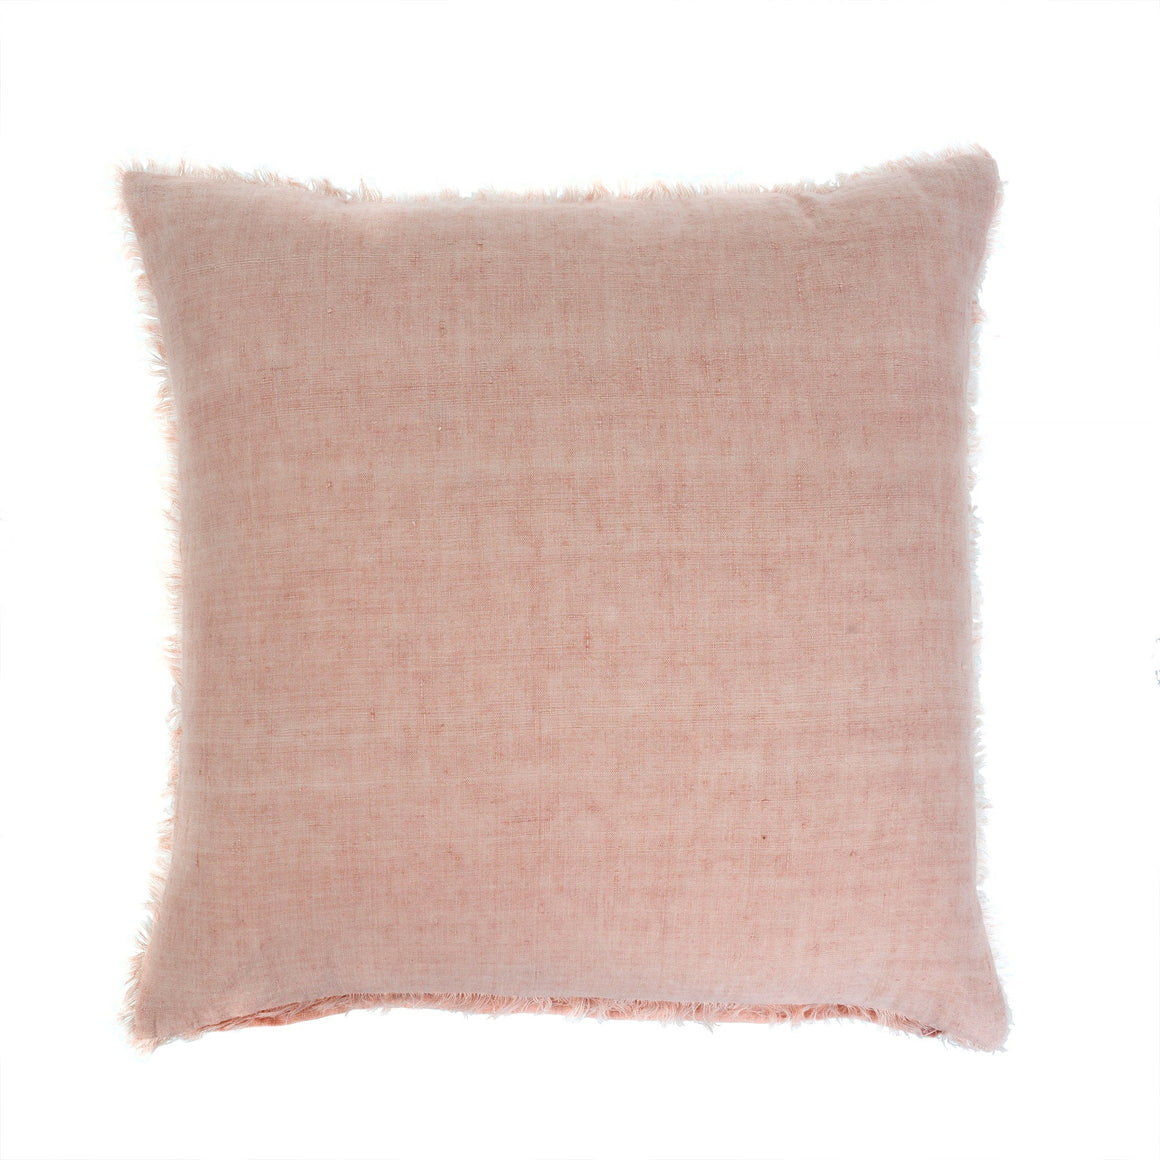 Peach Pink Linen Pillow